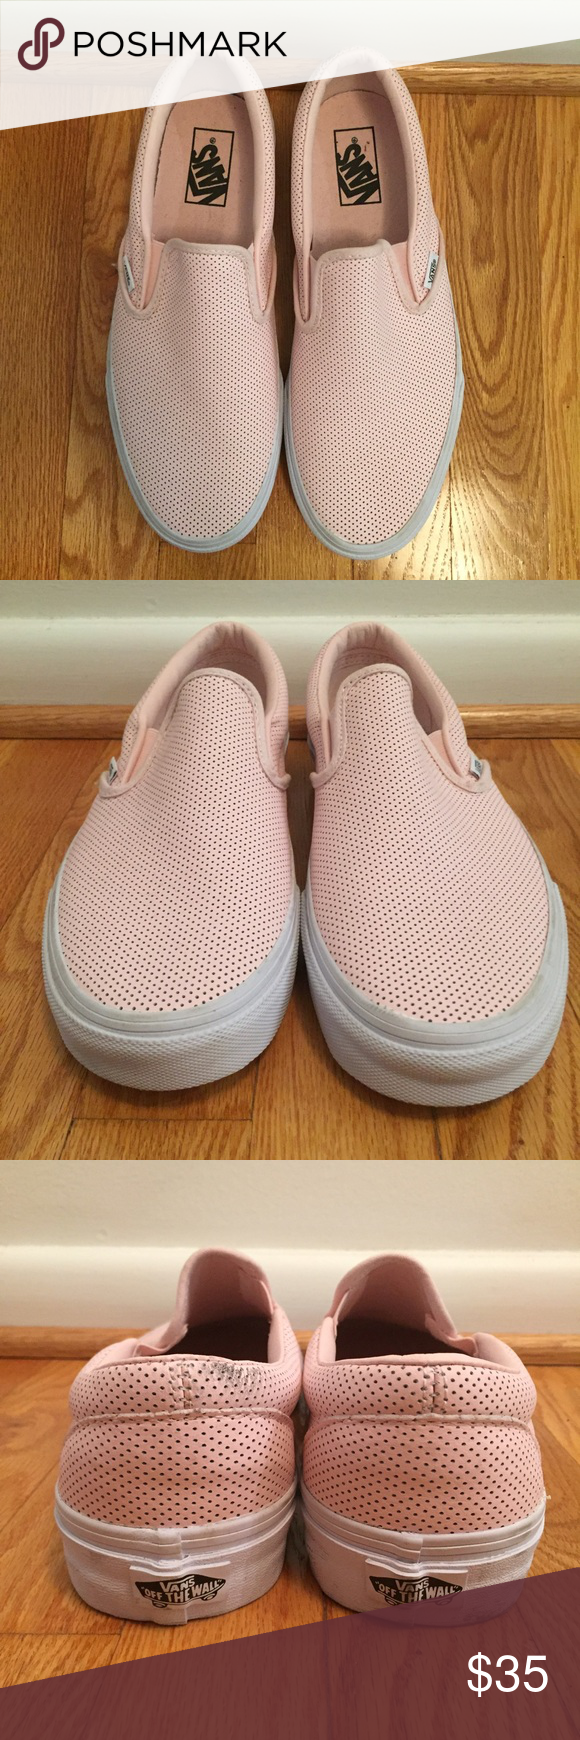 b3ae0c845d3b2e Pink perforated leather slip on Vans Asher Classic These fit large ...